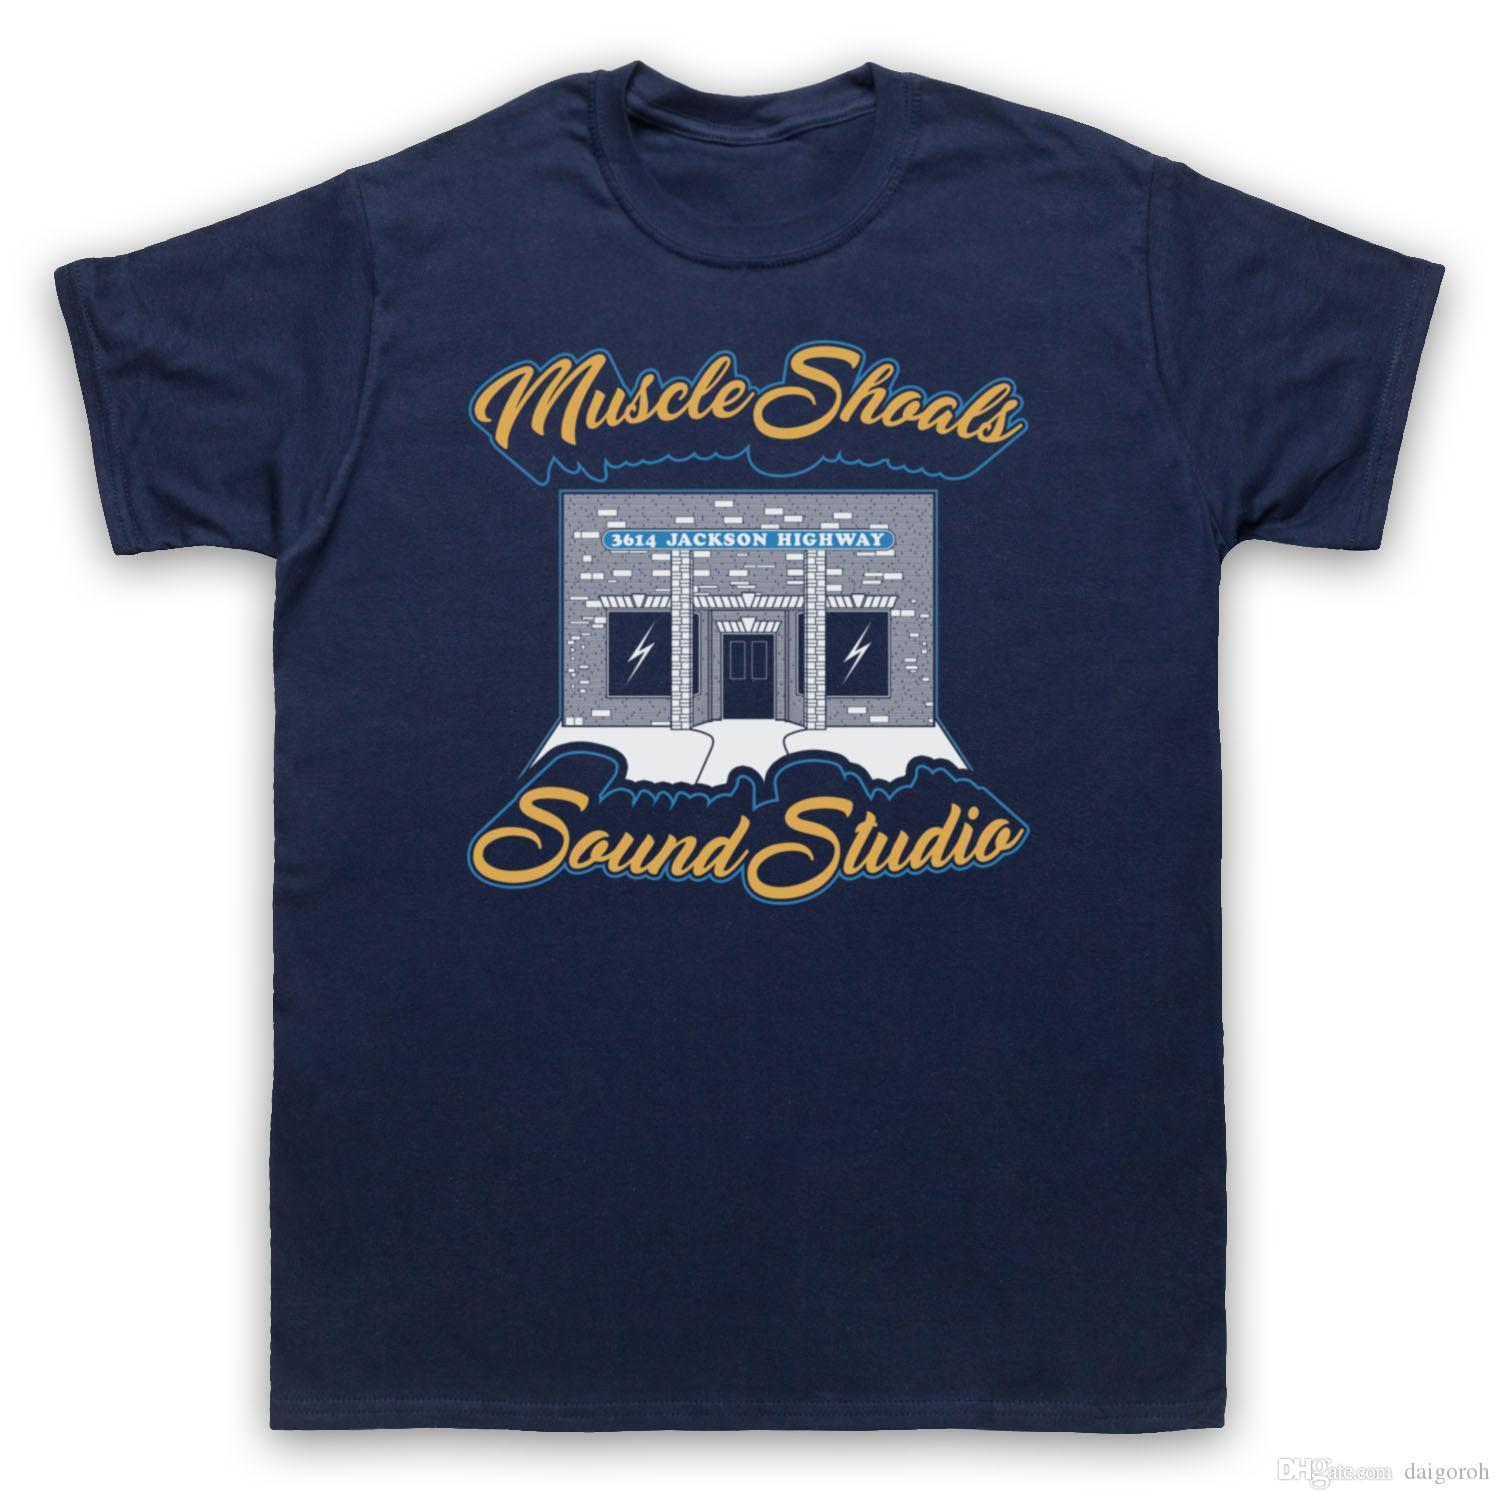 6128158d MUSCLE SHOALS SOUND STUDIO 3614 JACKSON HIGHWAY RECORD ADULTS & KIDS T SHIRT  Printed T Shirt Funny T Shirts For Guys From Tshirtmall, $10.46| DHgate.Com